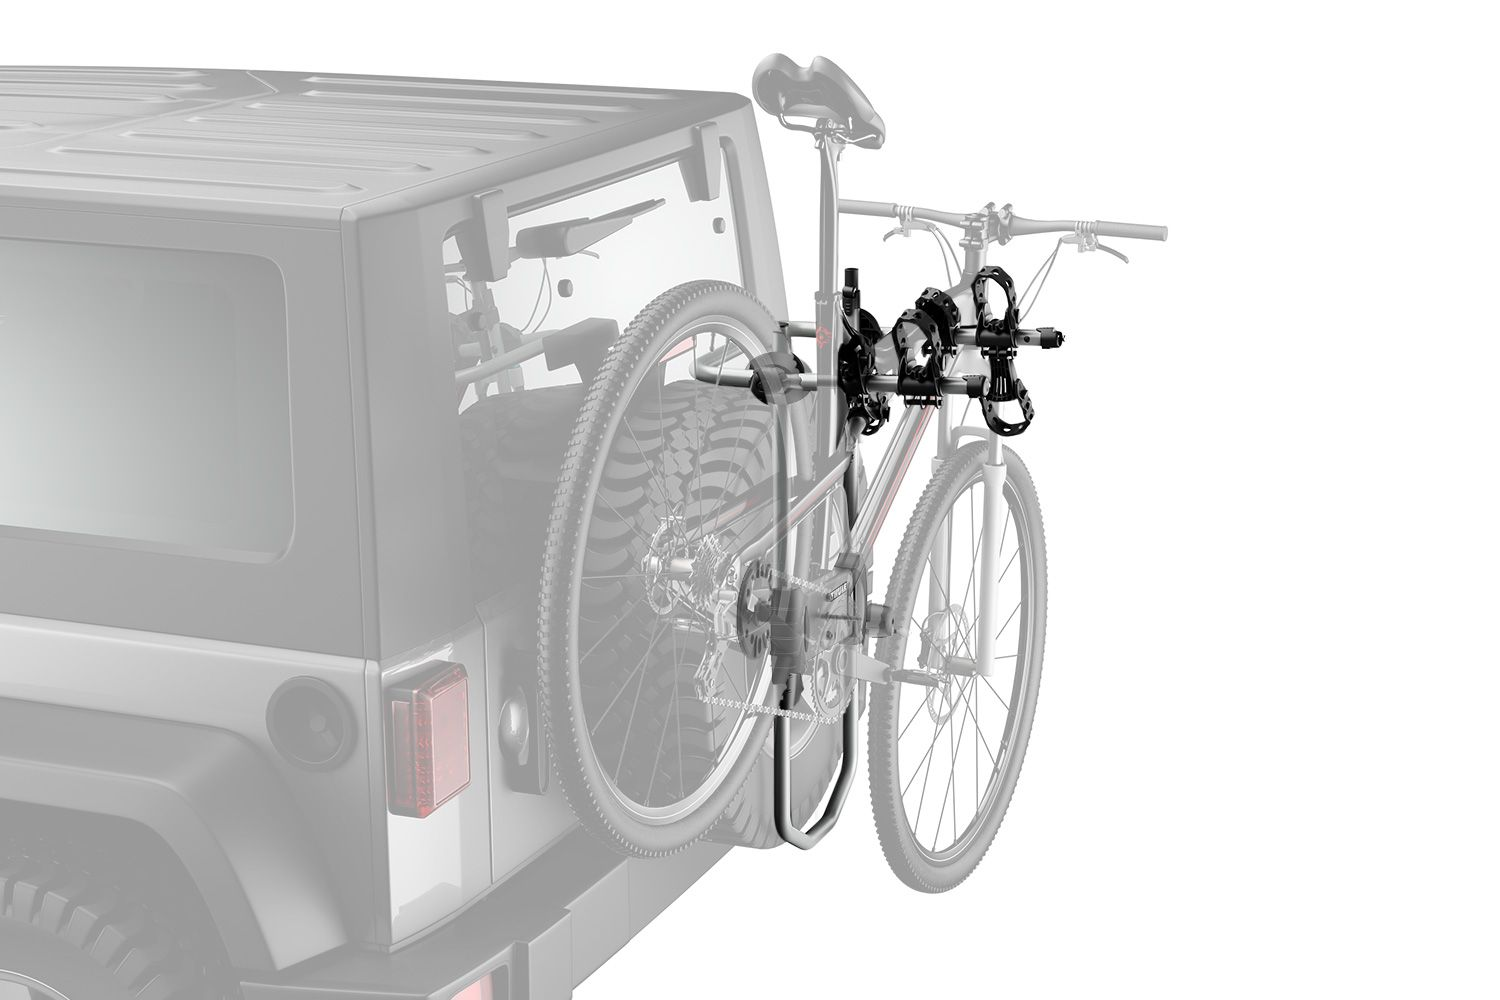 180 Free Shipping Compatible With My Jeep Thule Spare Me Spare Tire Bike Rack Spare Tire Bike Rack Bike Rack Spare Tire